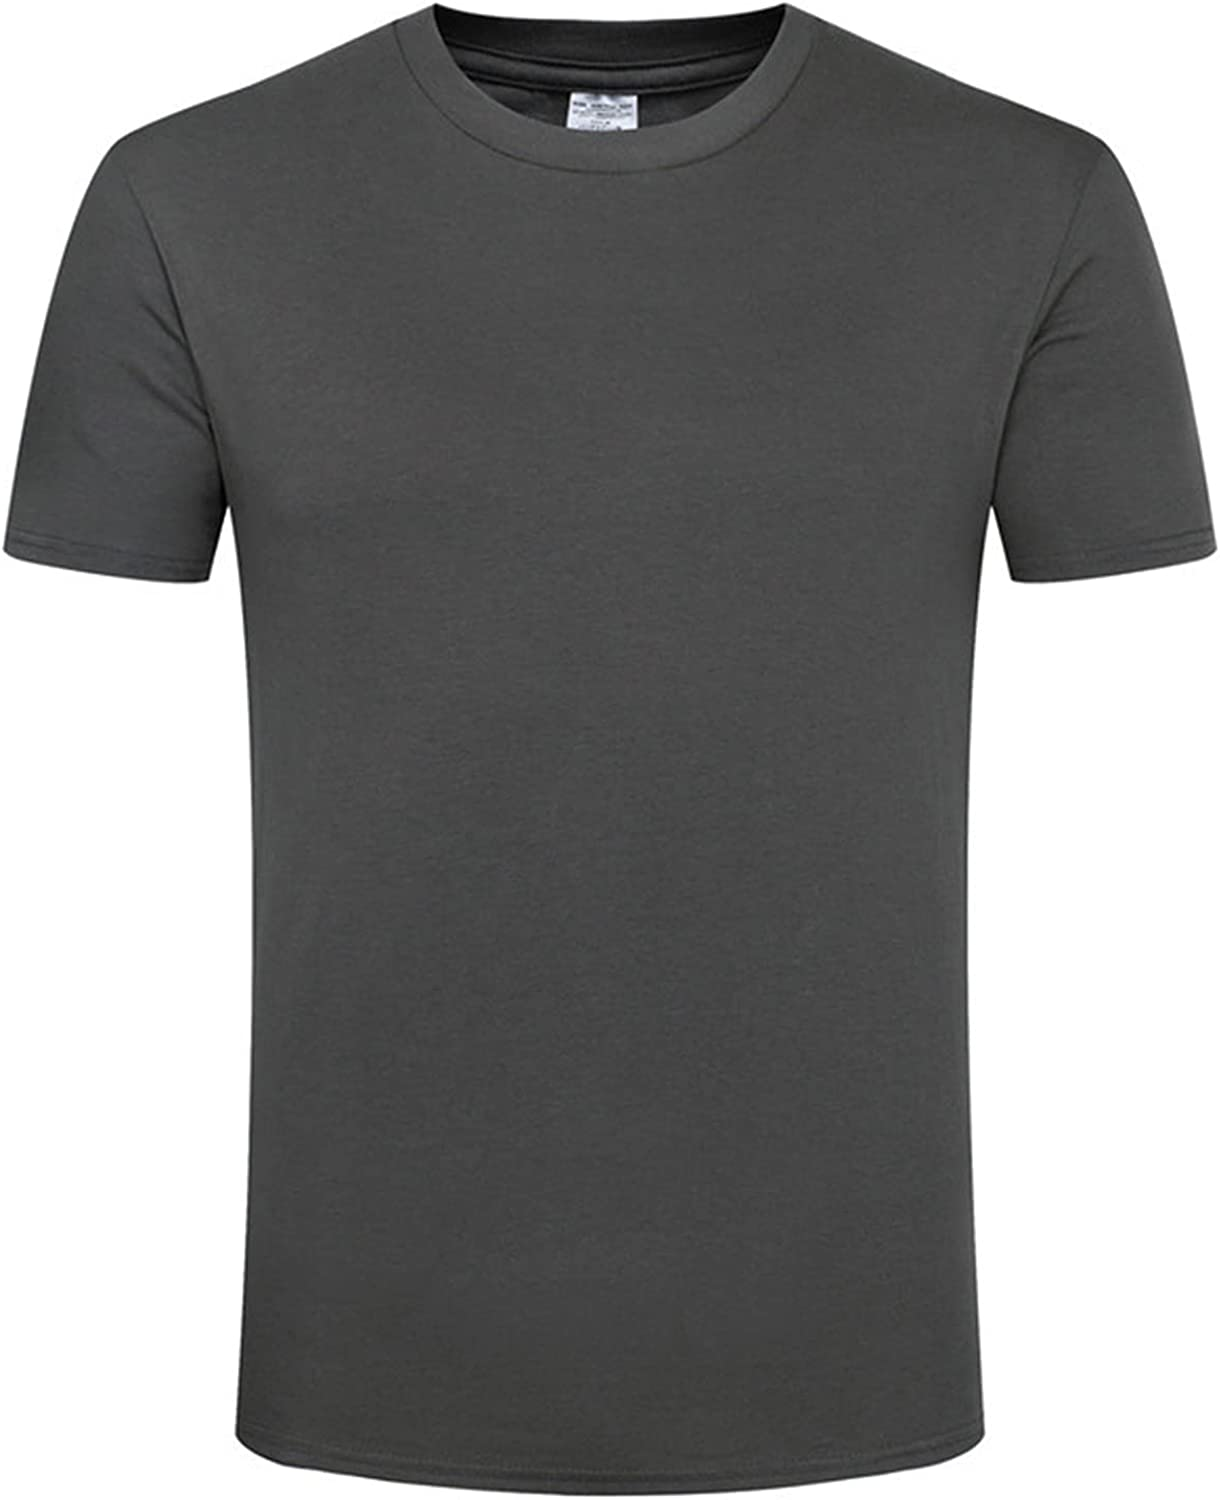 T Shirts for Men Fashion Hip Hop Pullover Short Sleeve Workout Gym Muscle T-Shirt Solid Color Round Neck Jacket Top